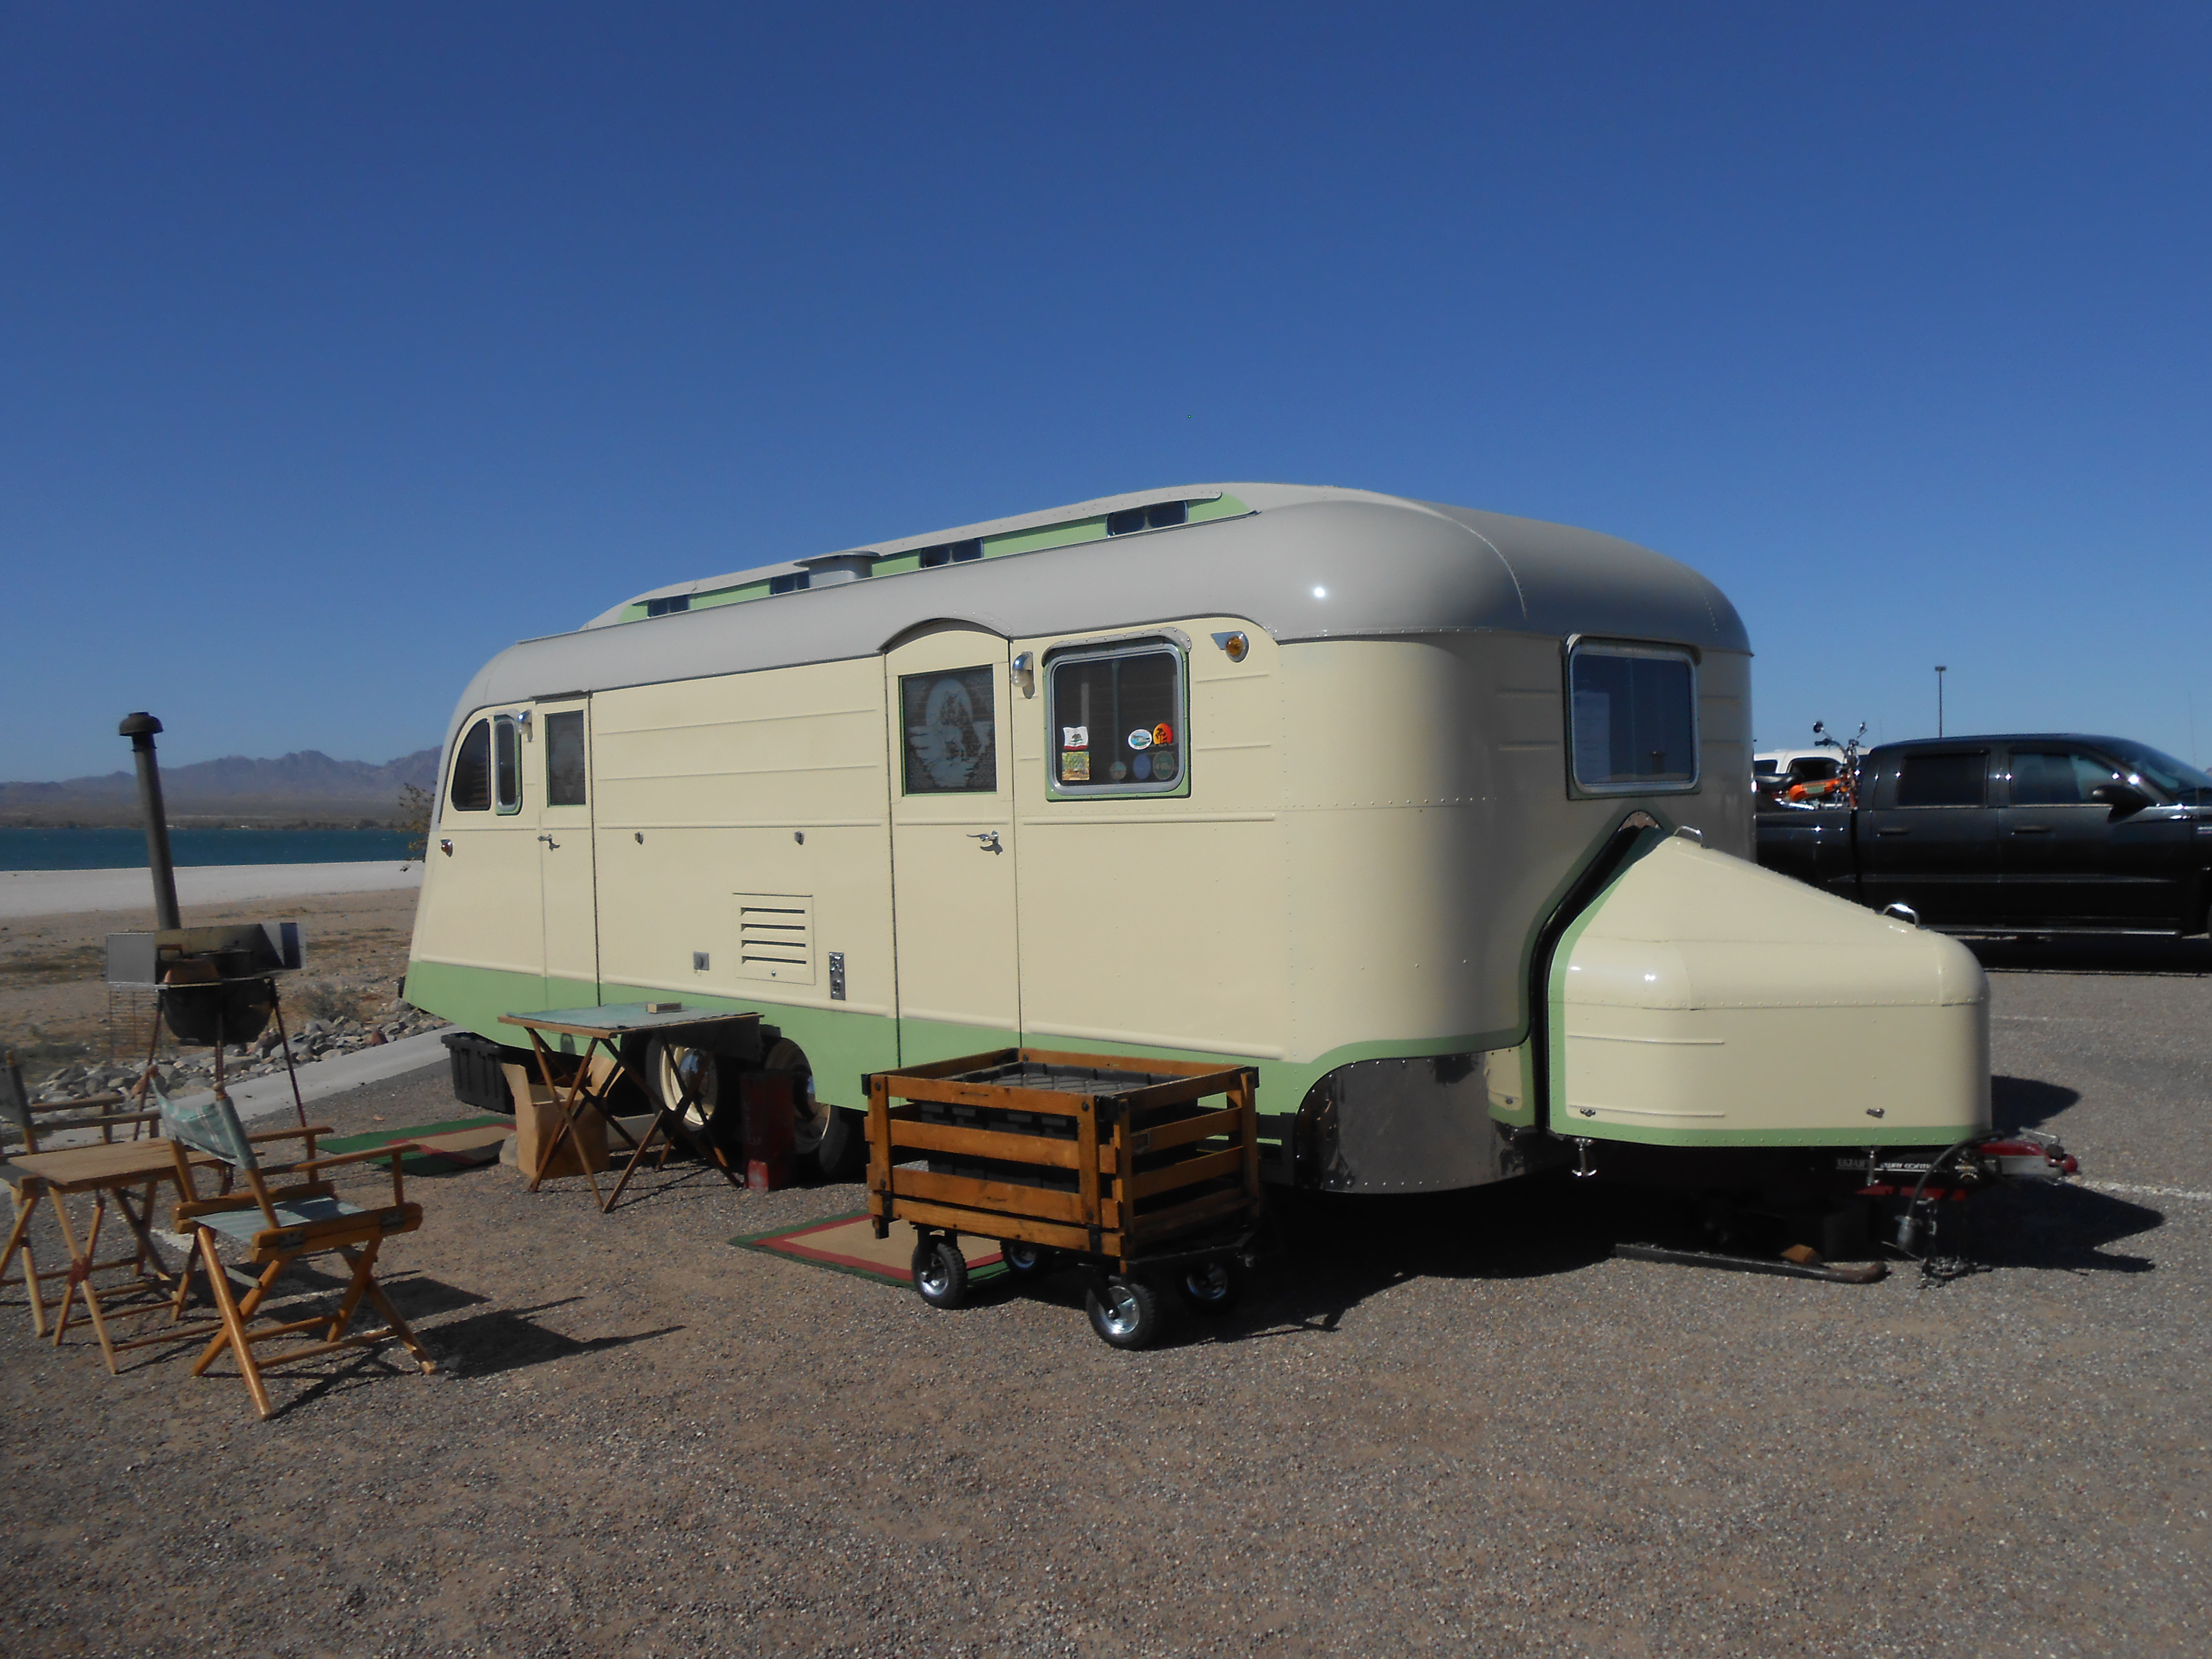 Lake Havasu Vintage Trailer Campout 2017